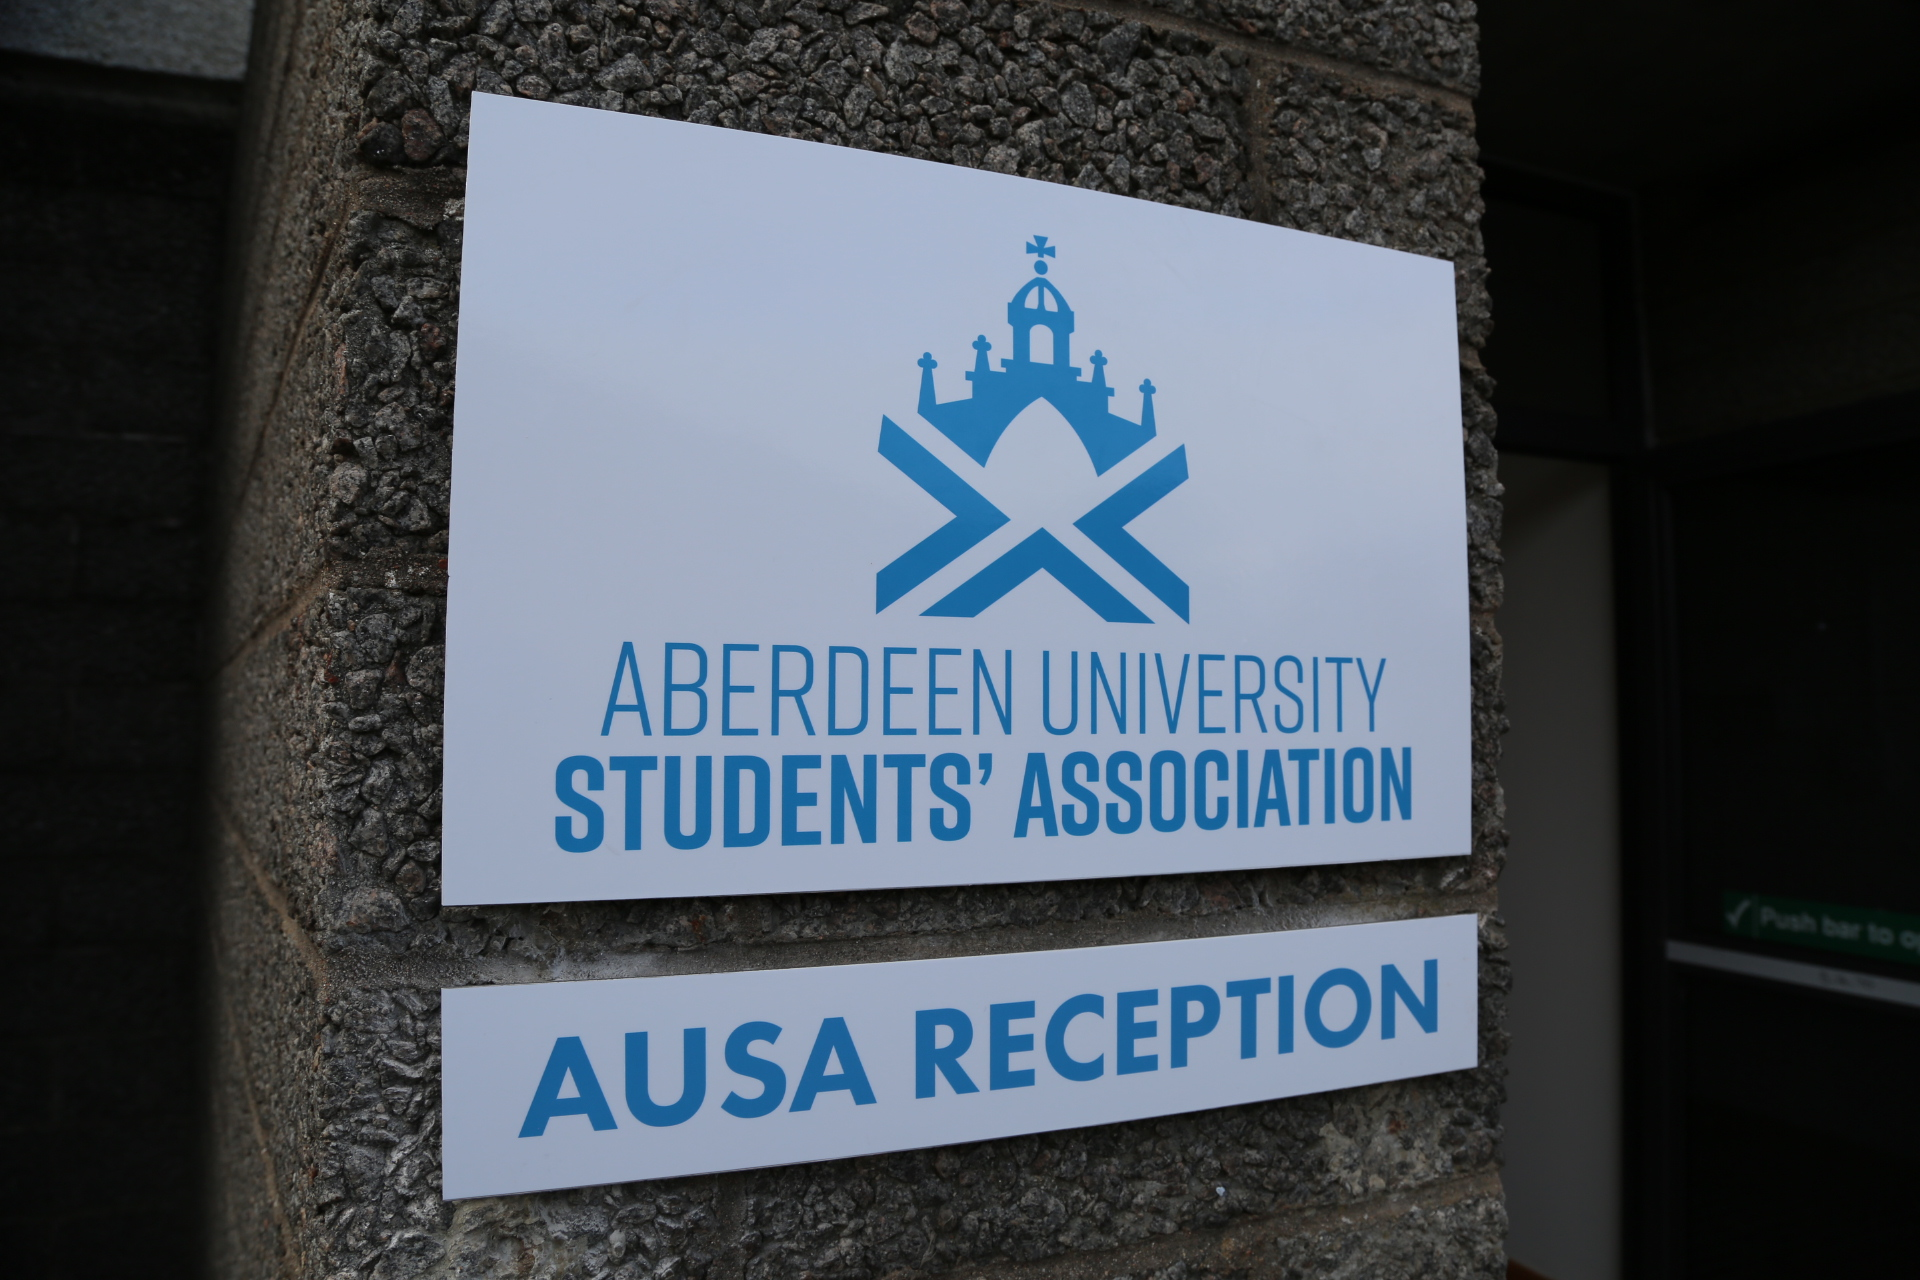 AUSA is looking for businesses to help strengthen links with students